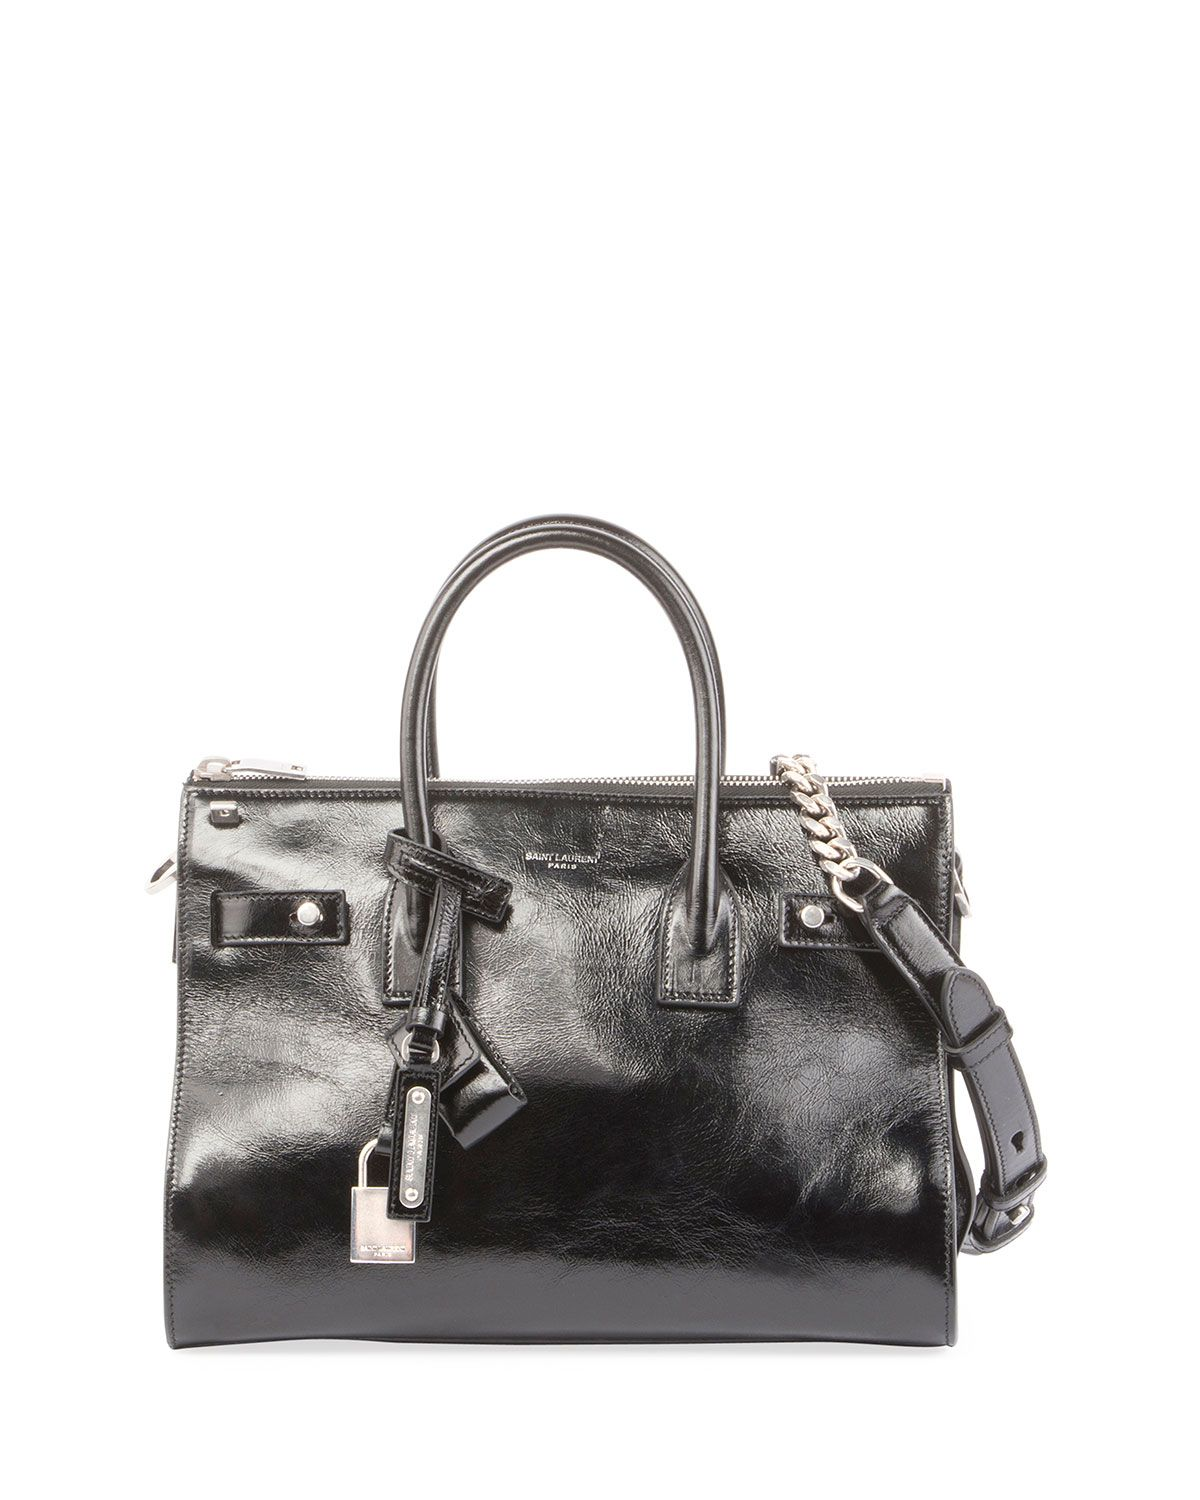 70f857f108b Saint Laurent Sac de Jour Baby Crinkled Leather Tote Bag | Products ...